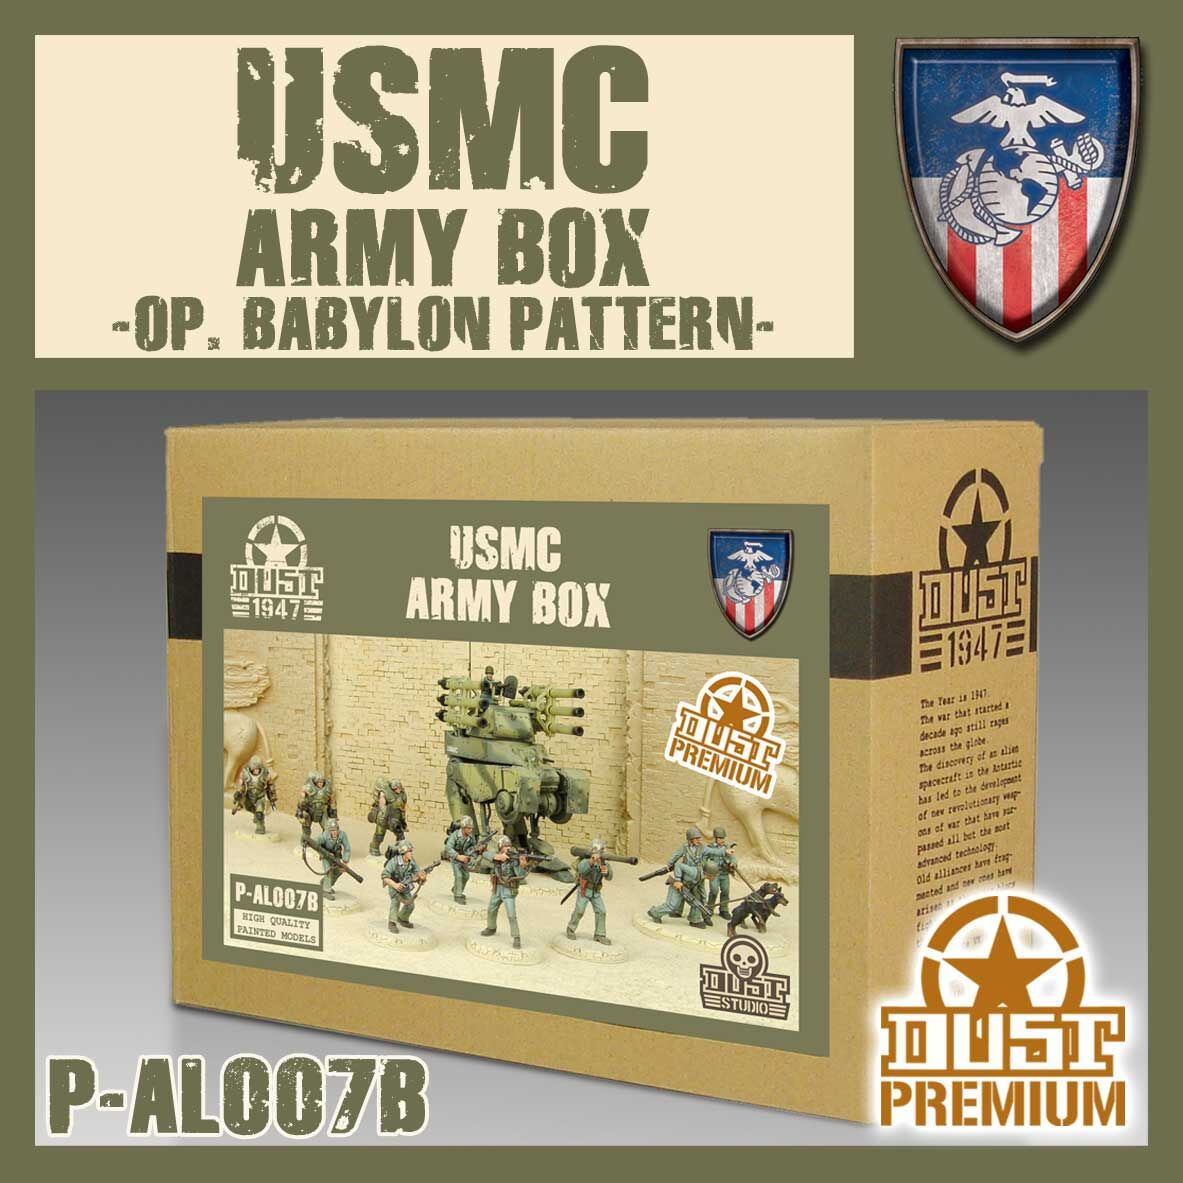 USMC Army Box - Babylon Pattern